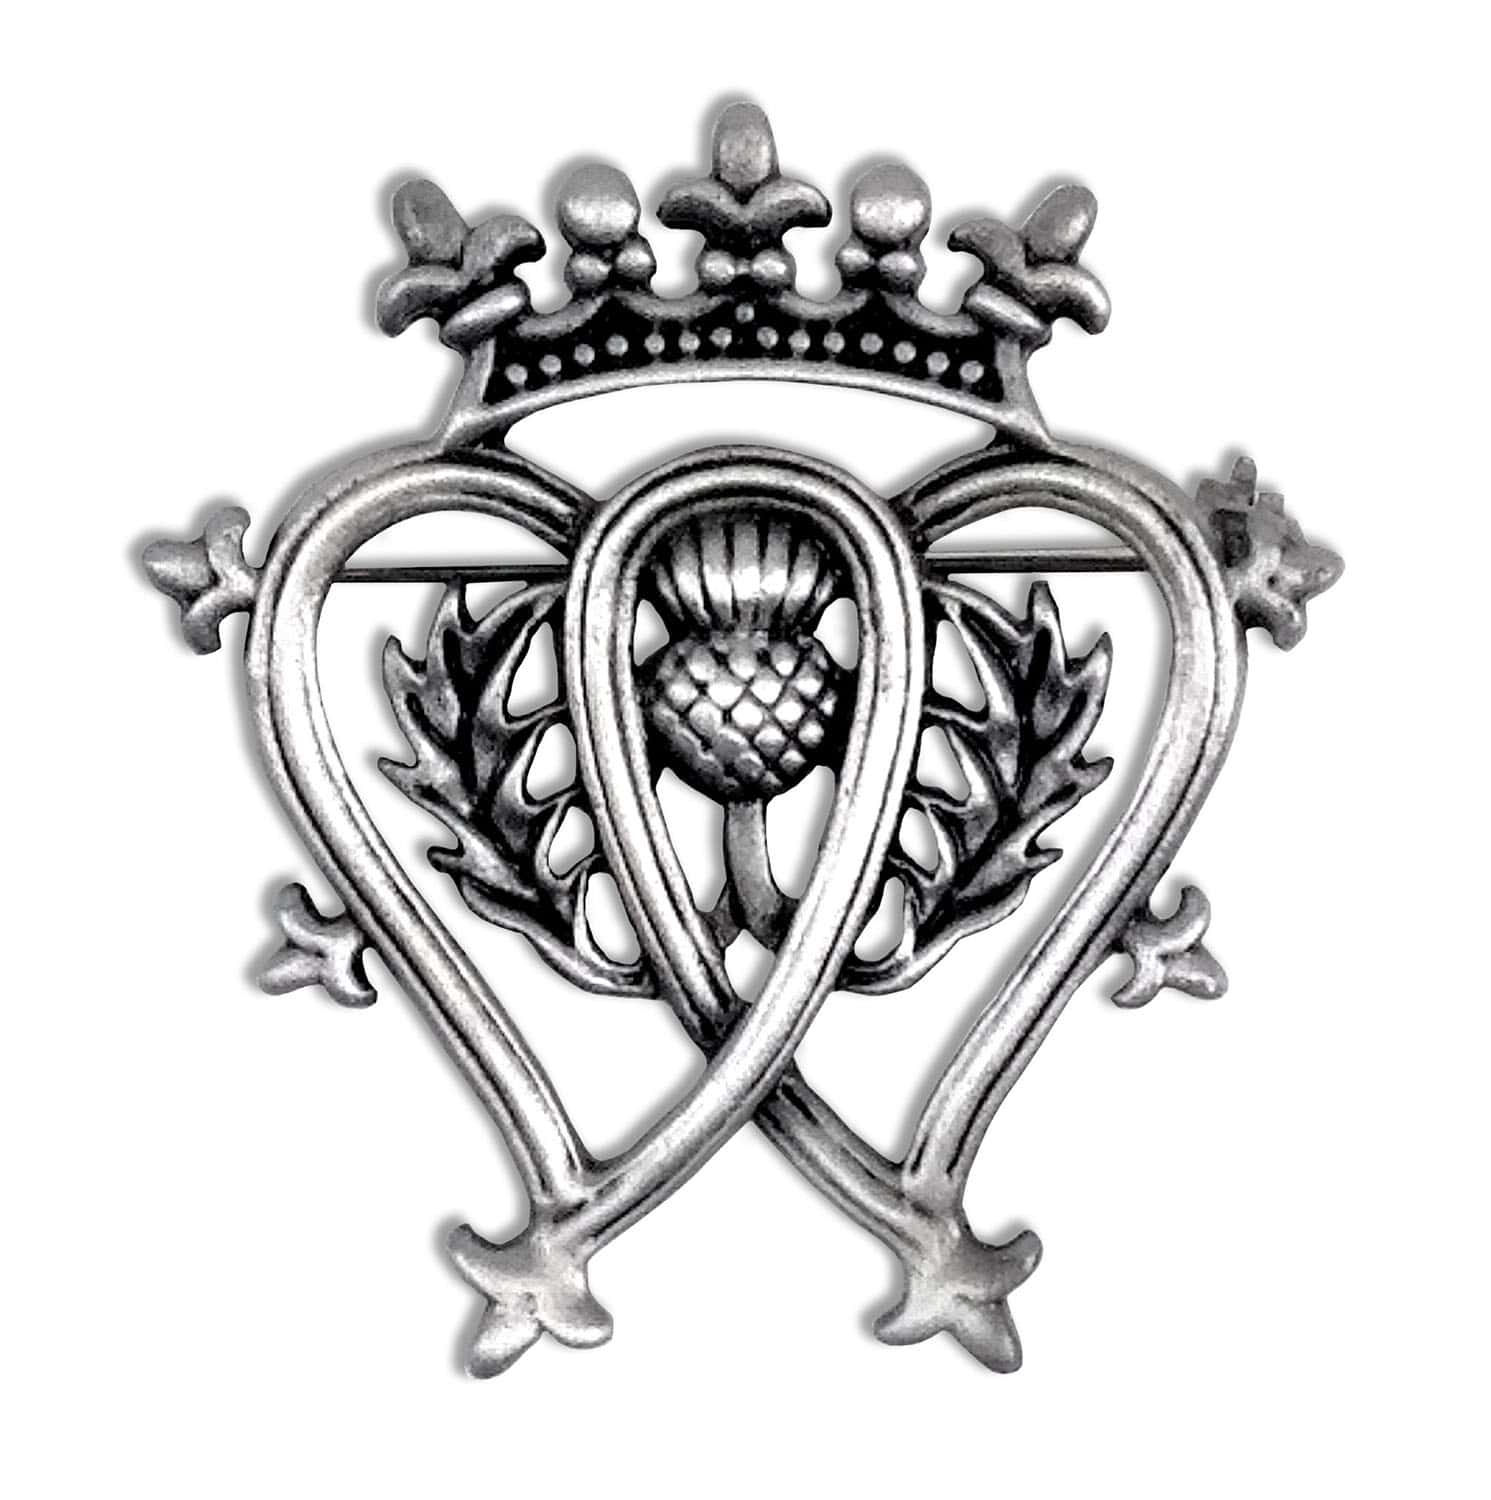 Pewter Brooch With Scottish Luckenbooth Thistle Symbols